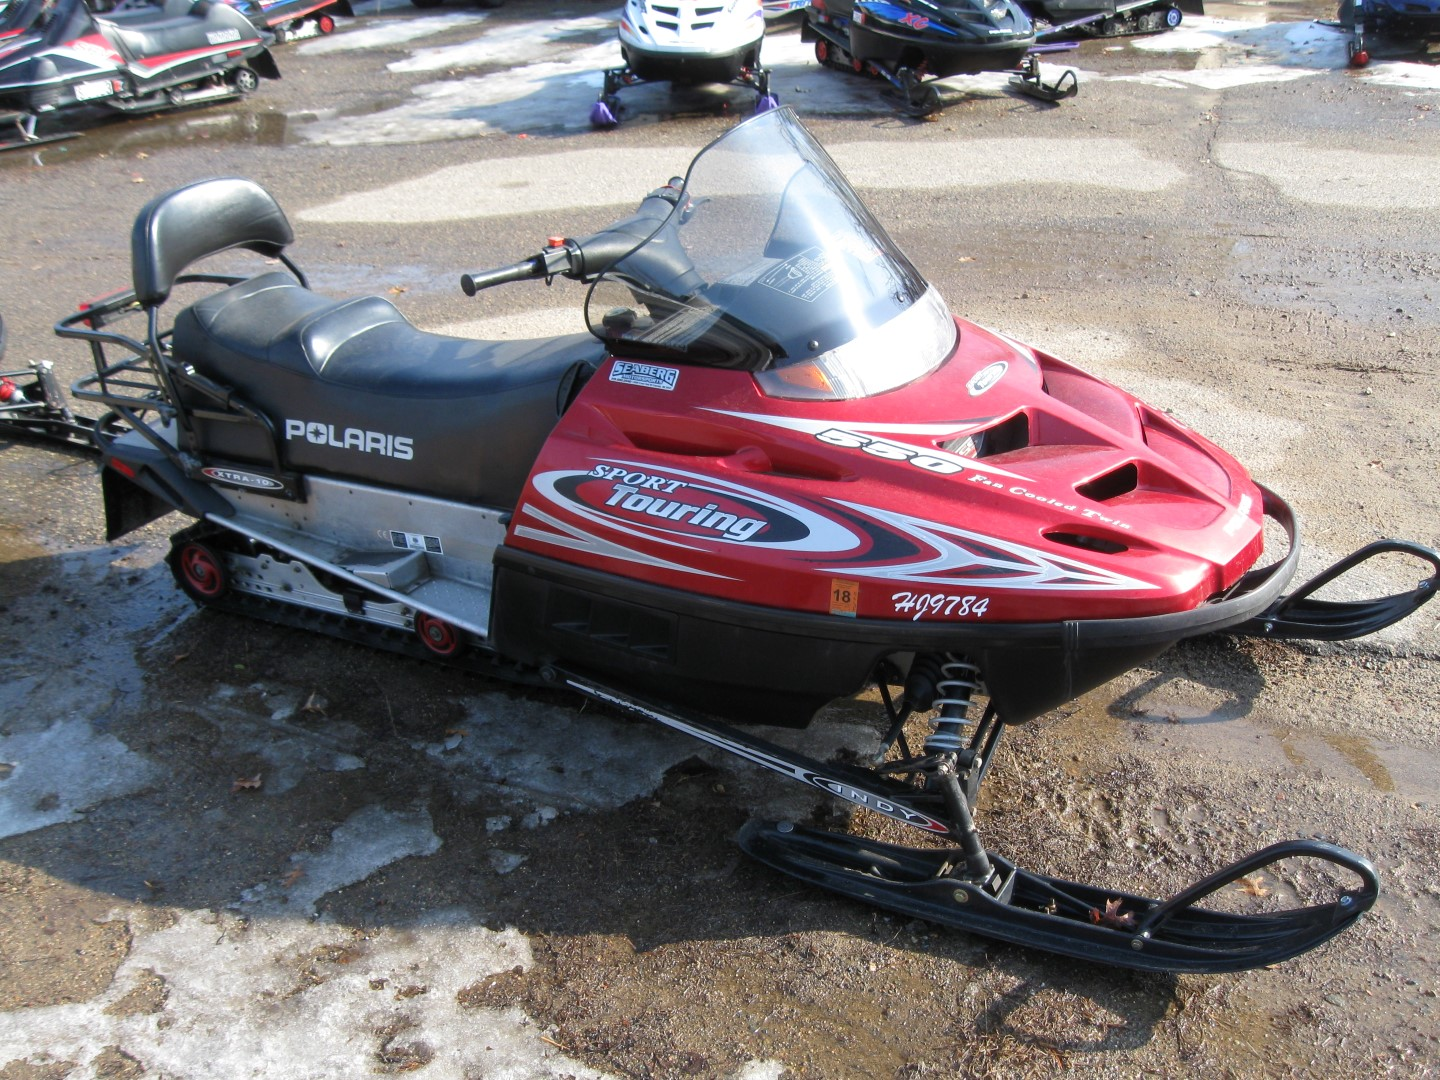 2002 Polaris Sport Touring 550 Snowmobile for sale Seaberg Motorsports Crosslake MN right quarter